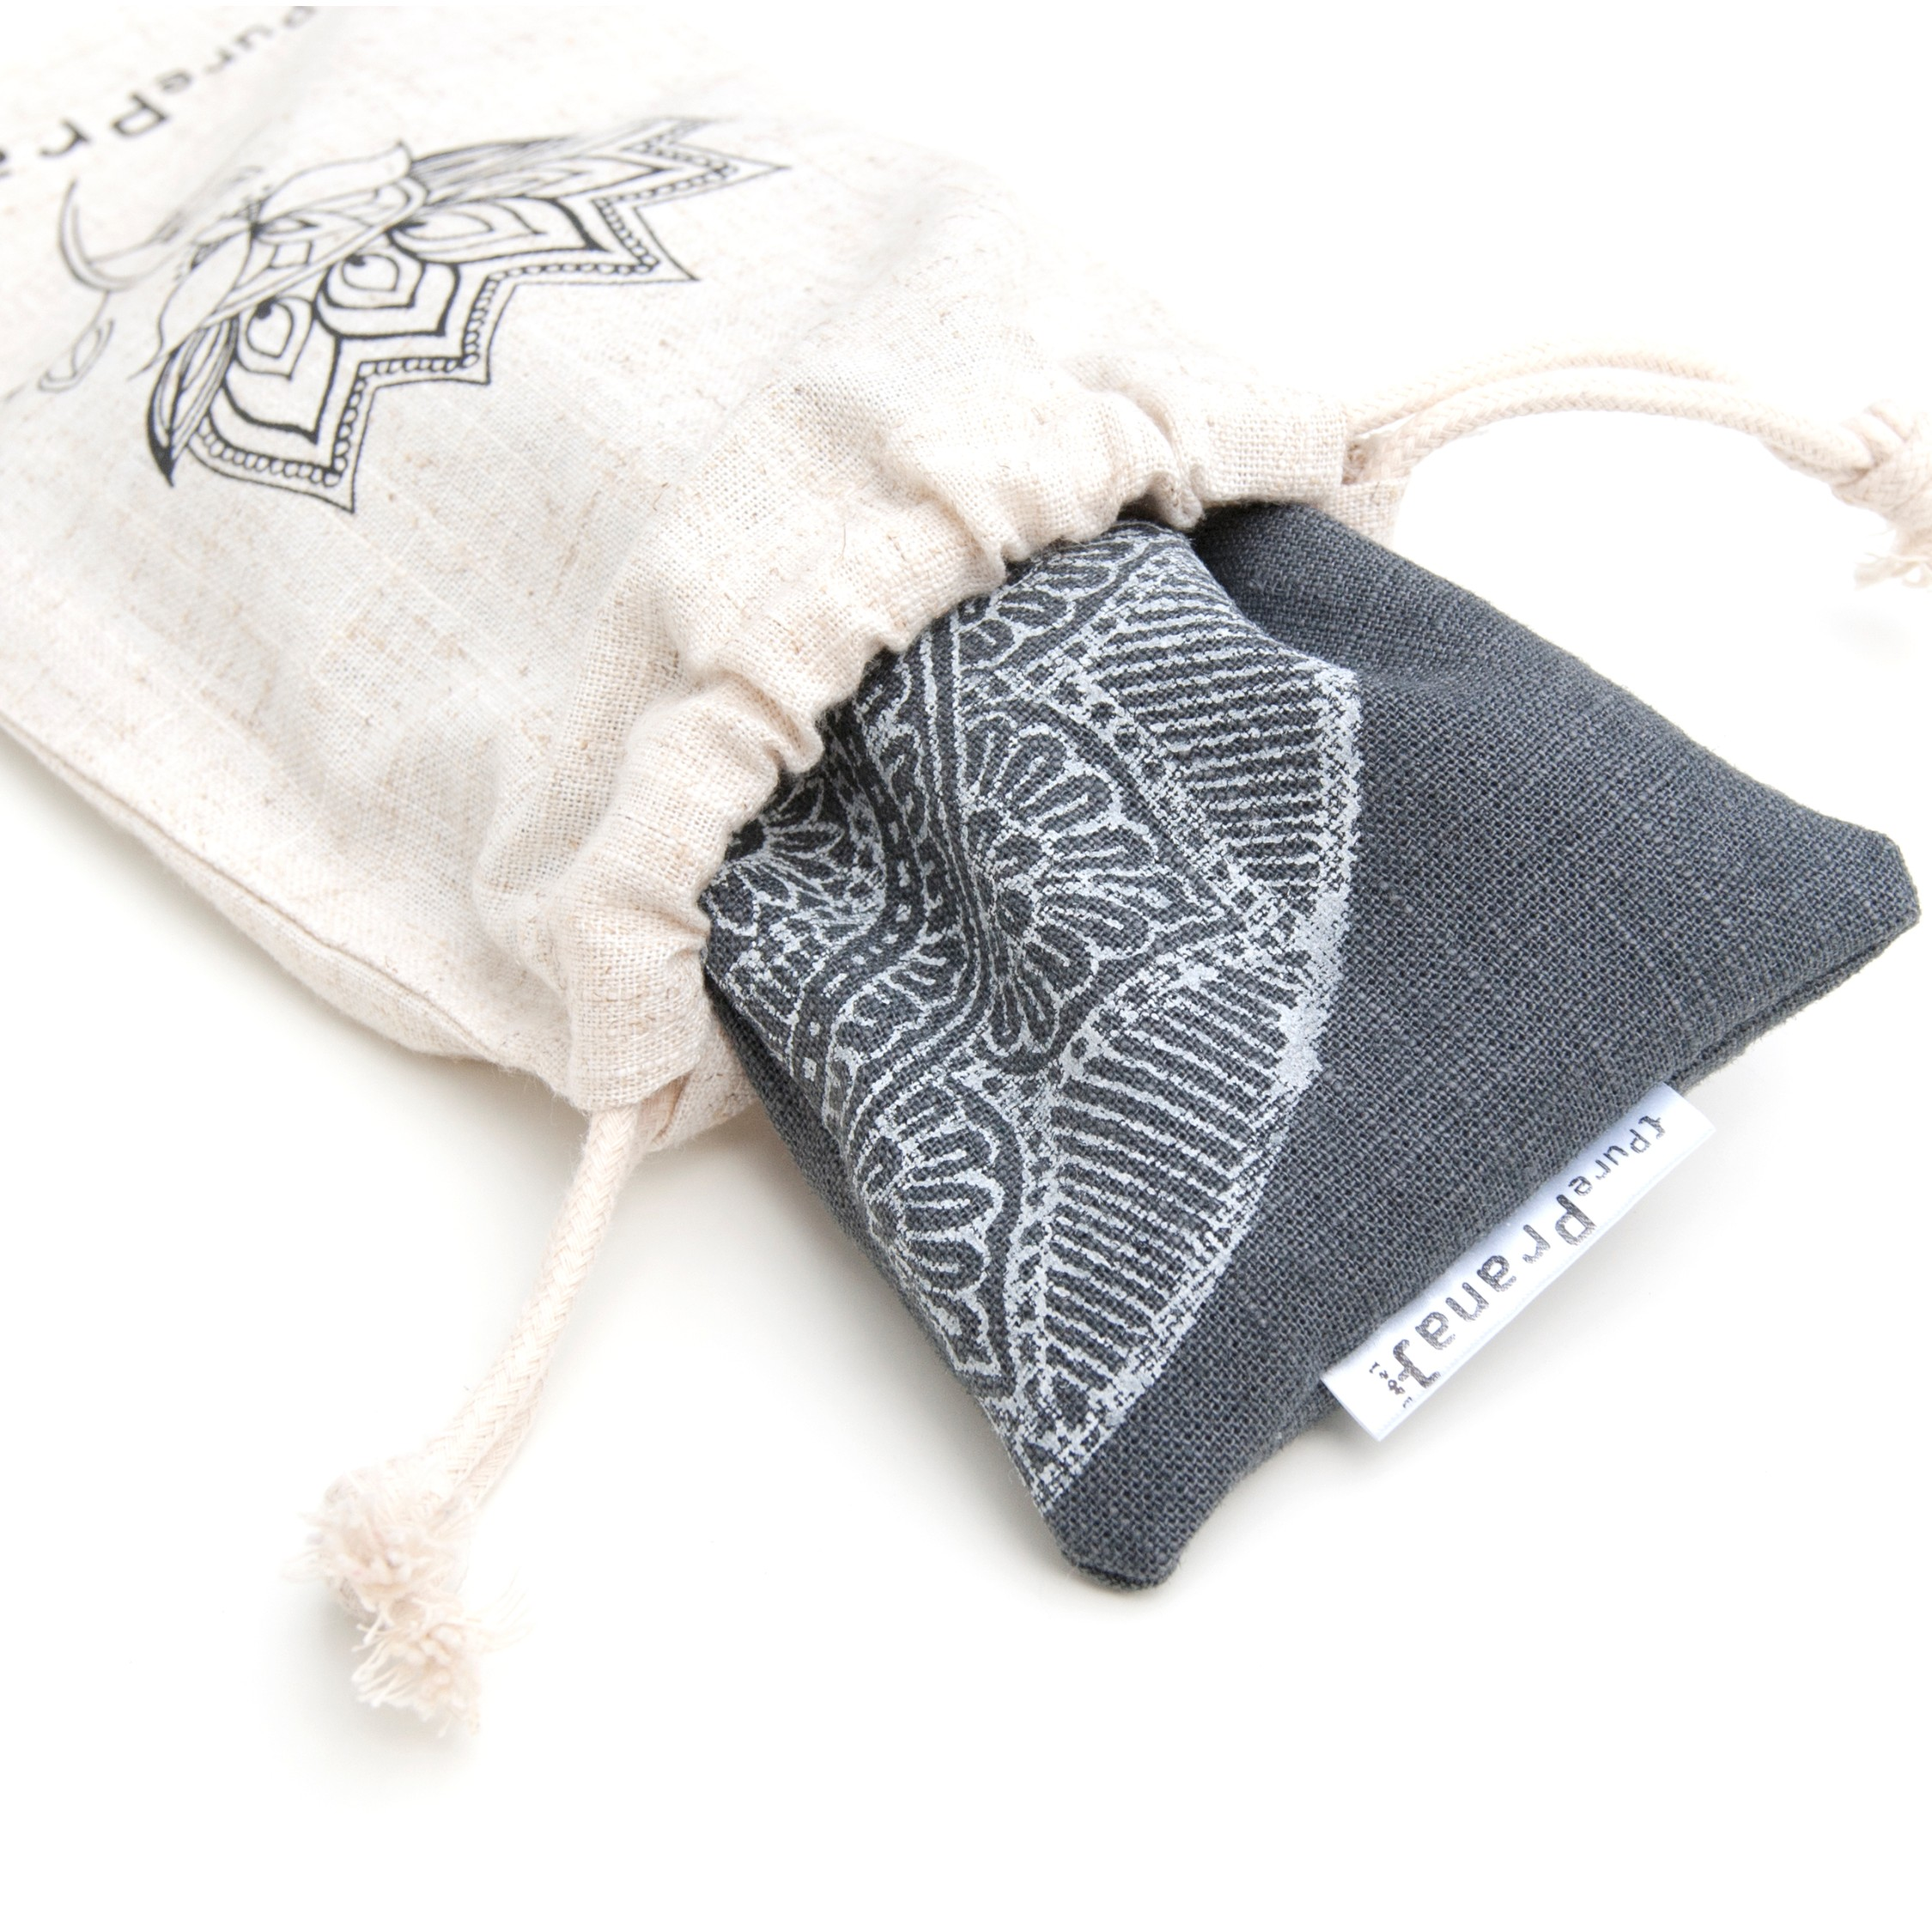 Yoga eye pillow by Pure Prana Label